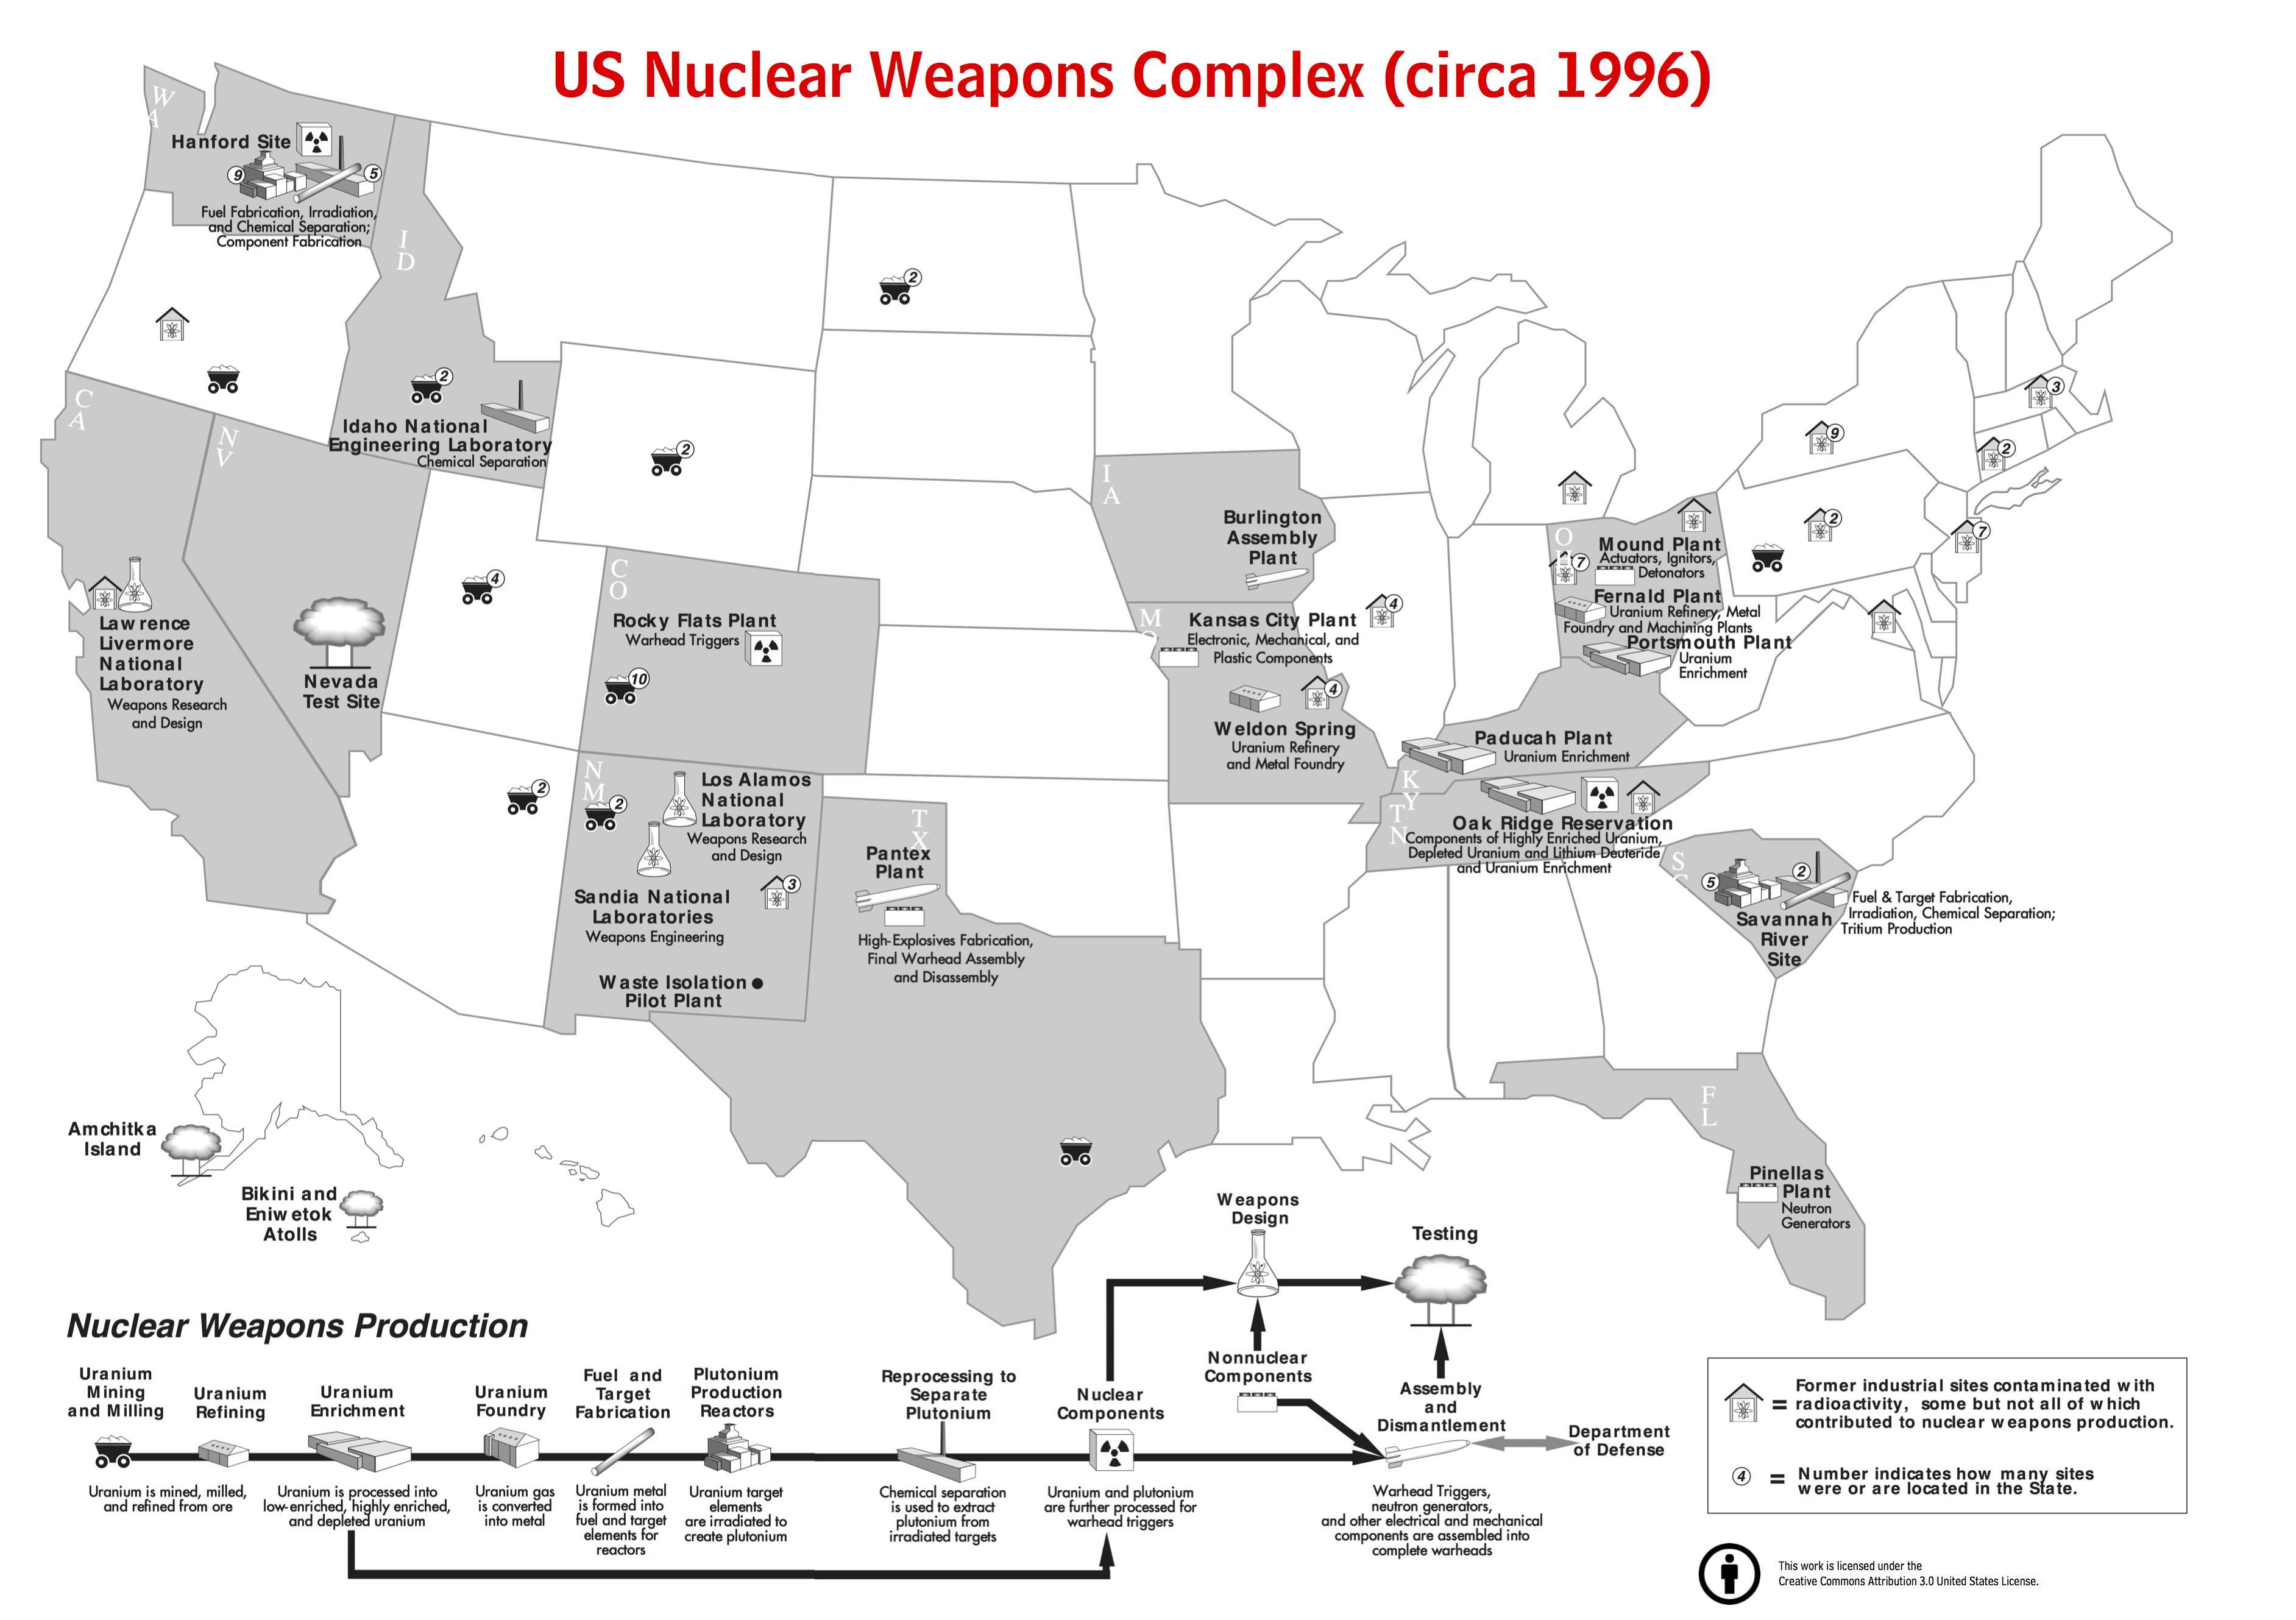 Map Of US Nuclear Weapons Complex DrRyanMccom - Us nuclear weapons map